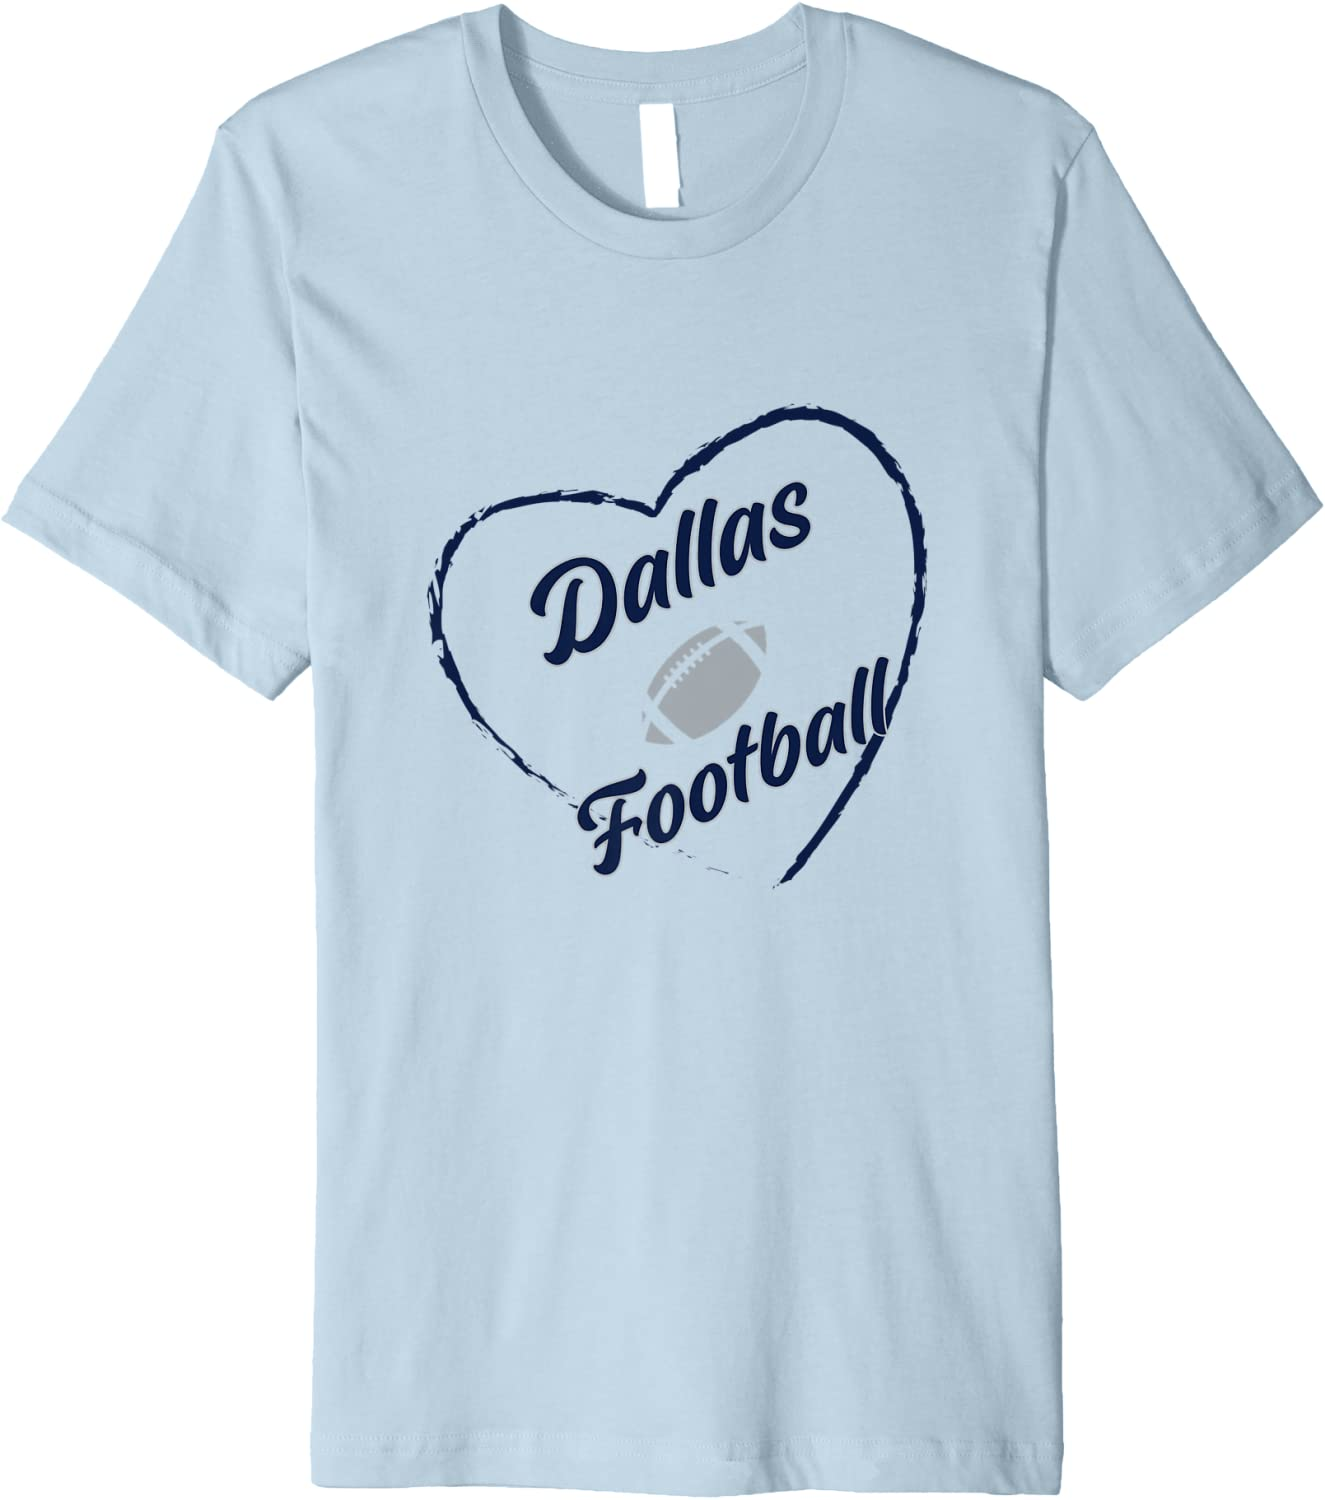 I Love Dallas T-Shirt Premium Football 5 Recommended ☆ very popular